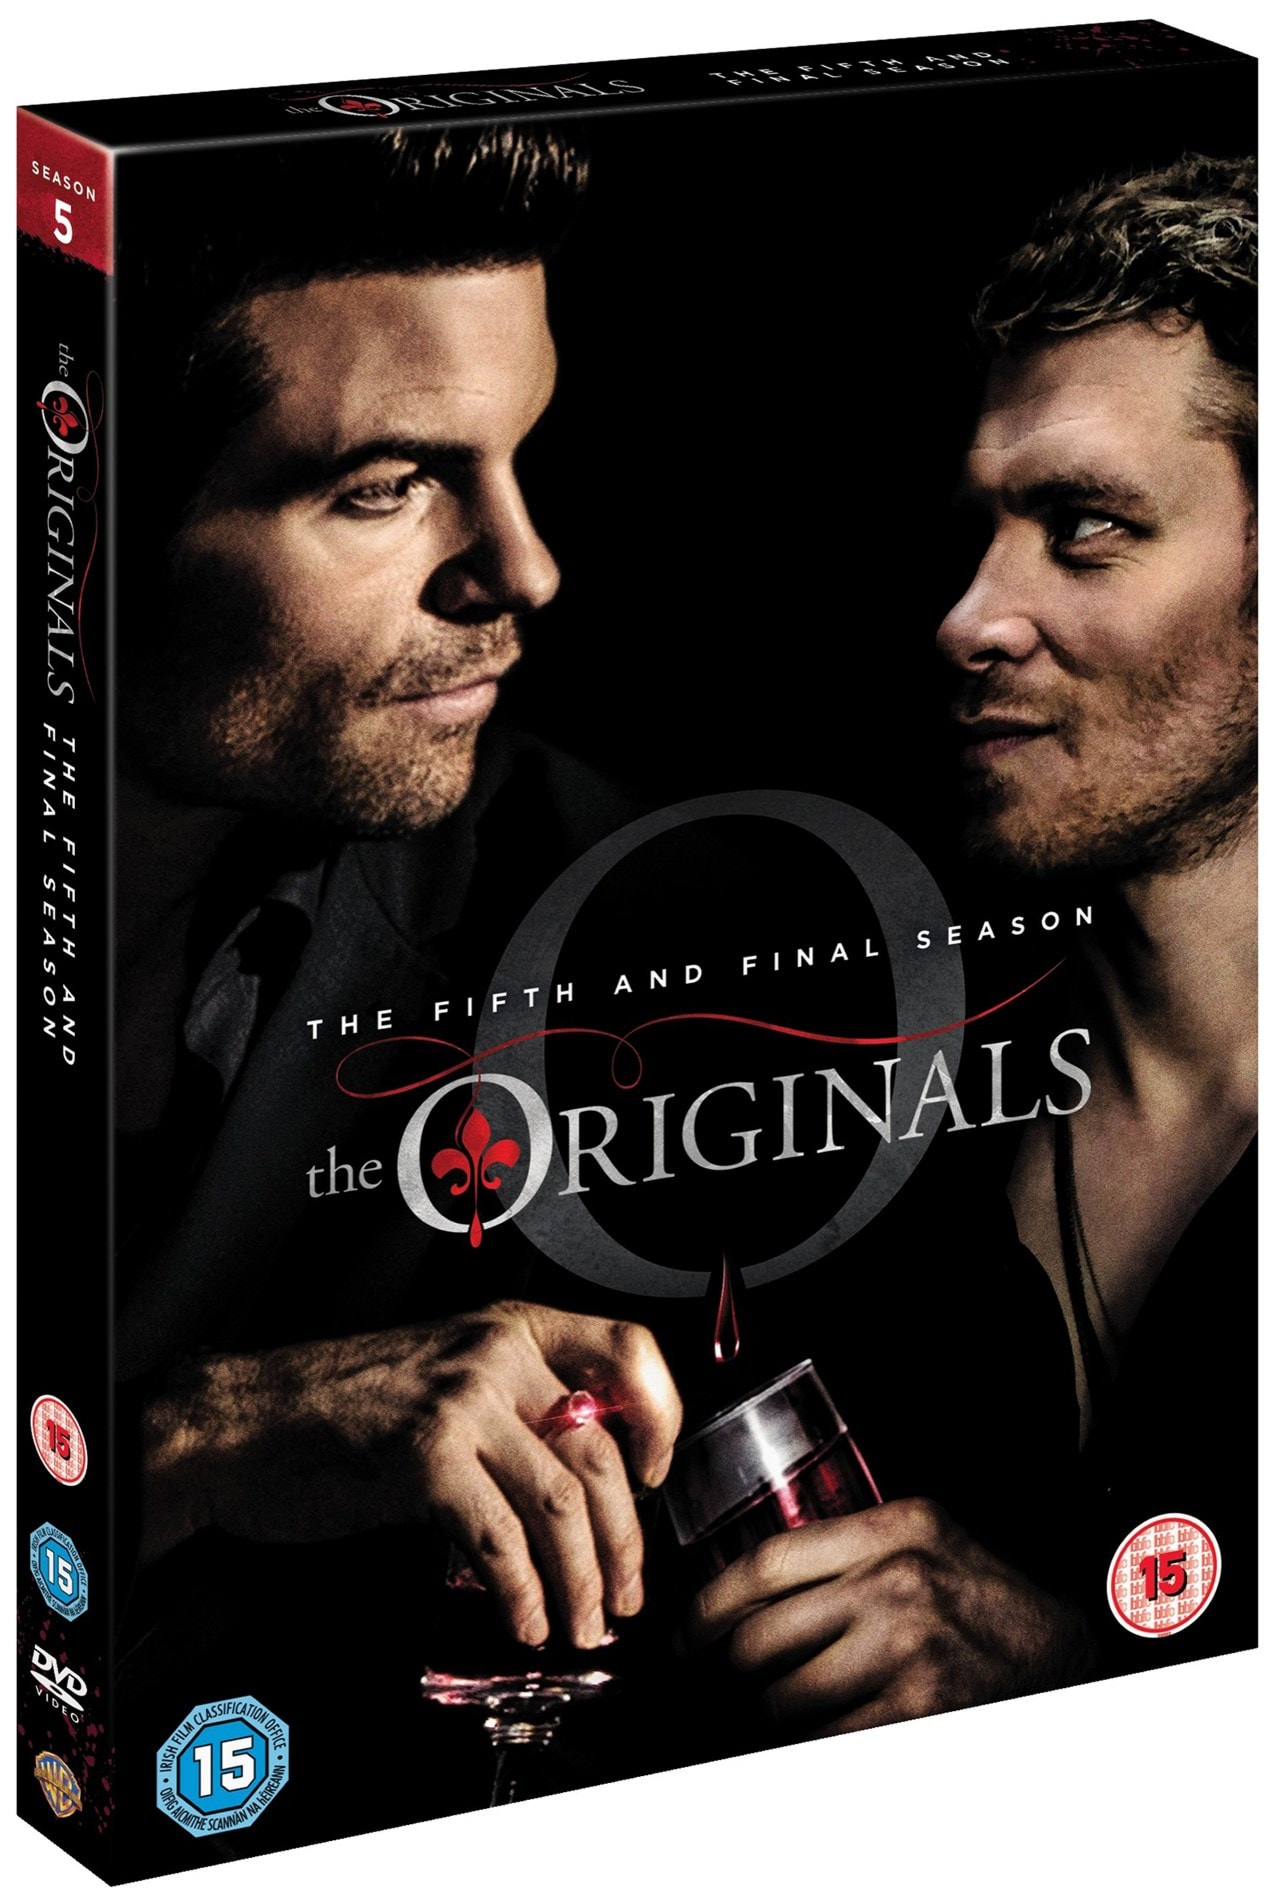 The Originals: The Fifth and Final Season - 2